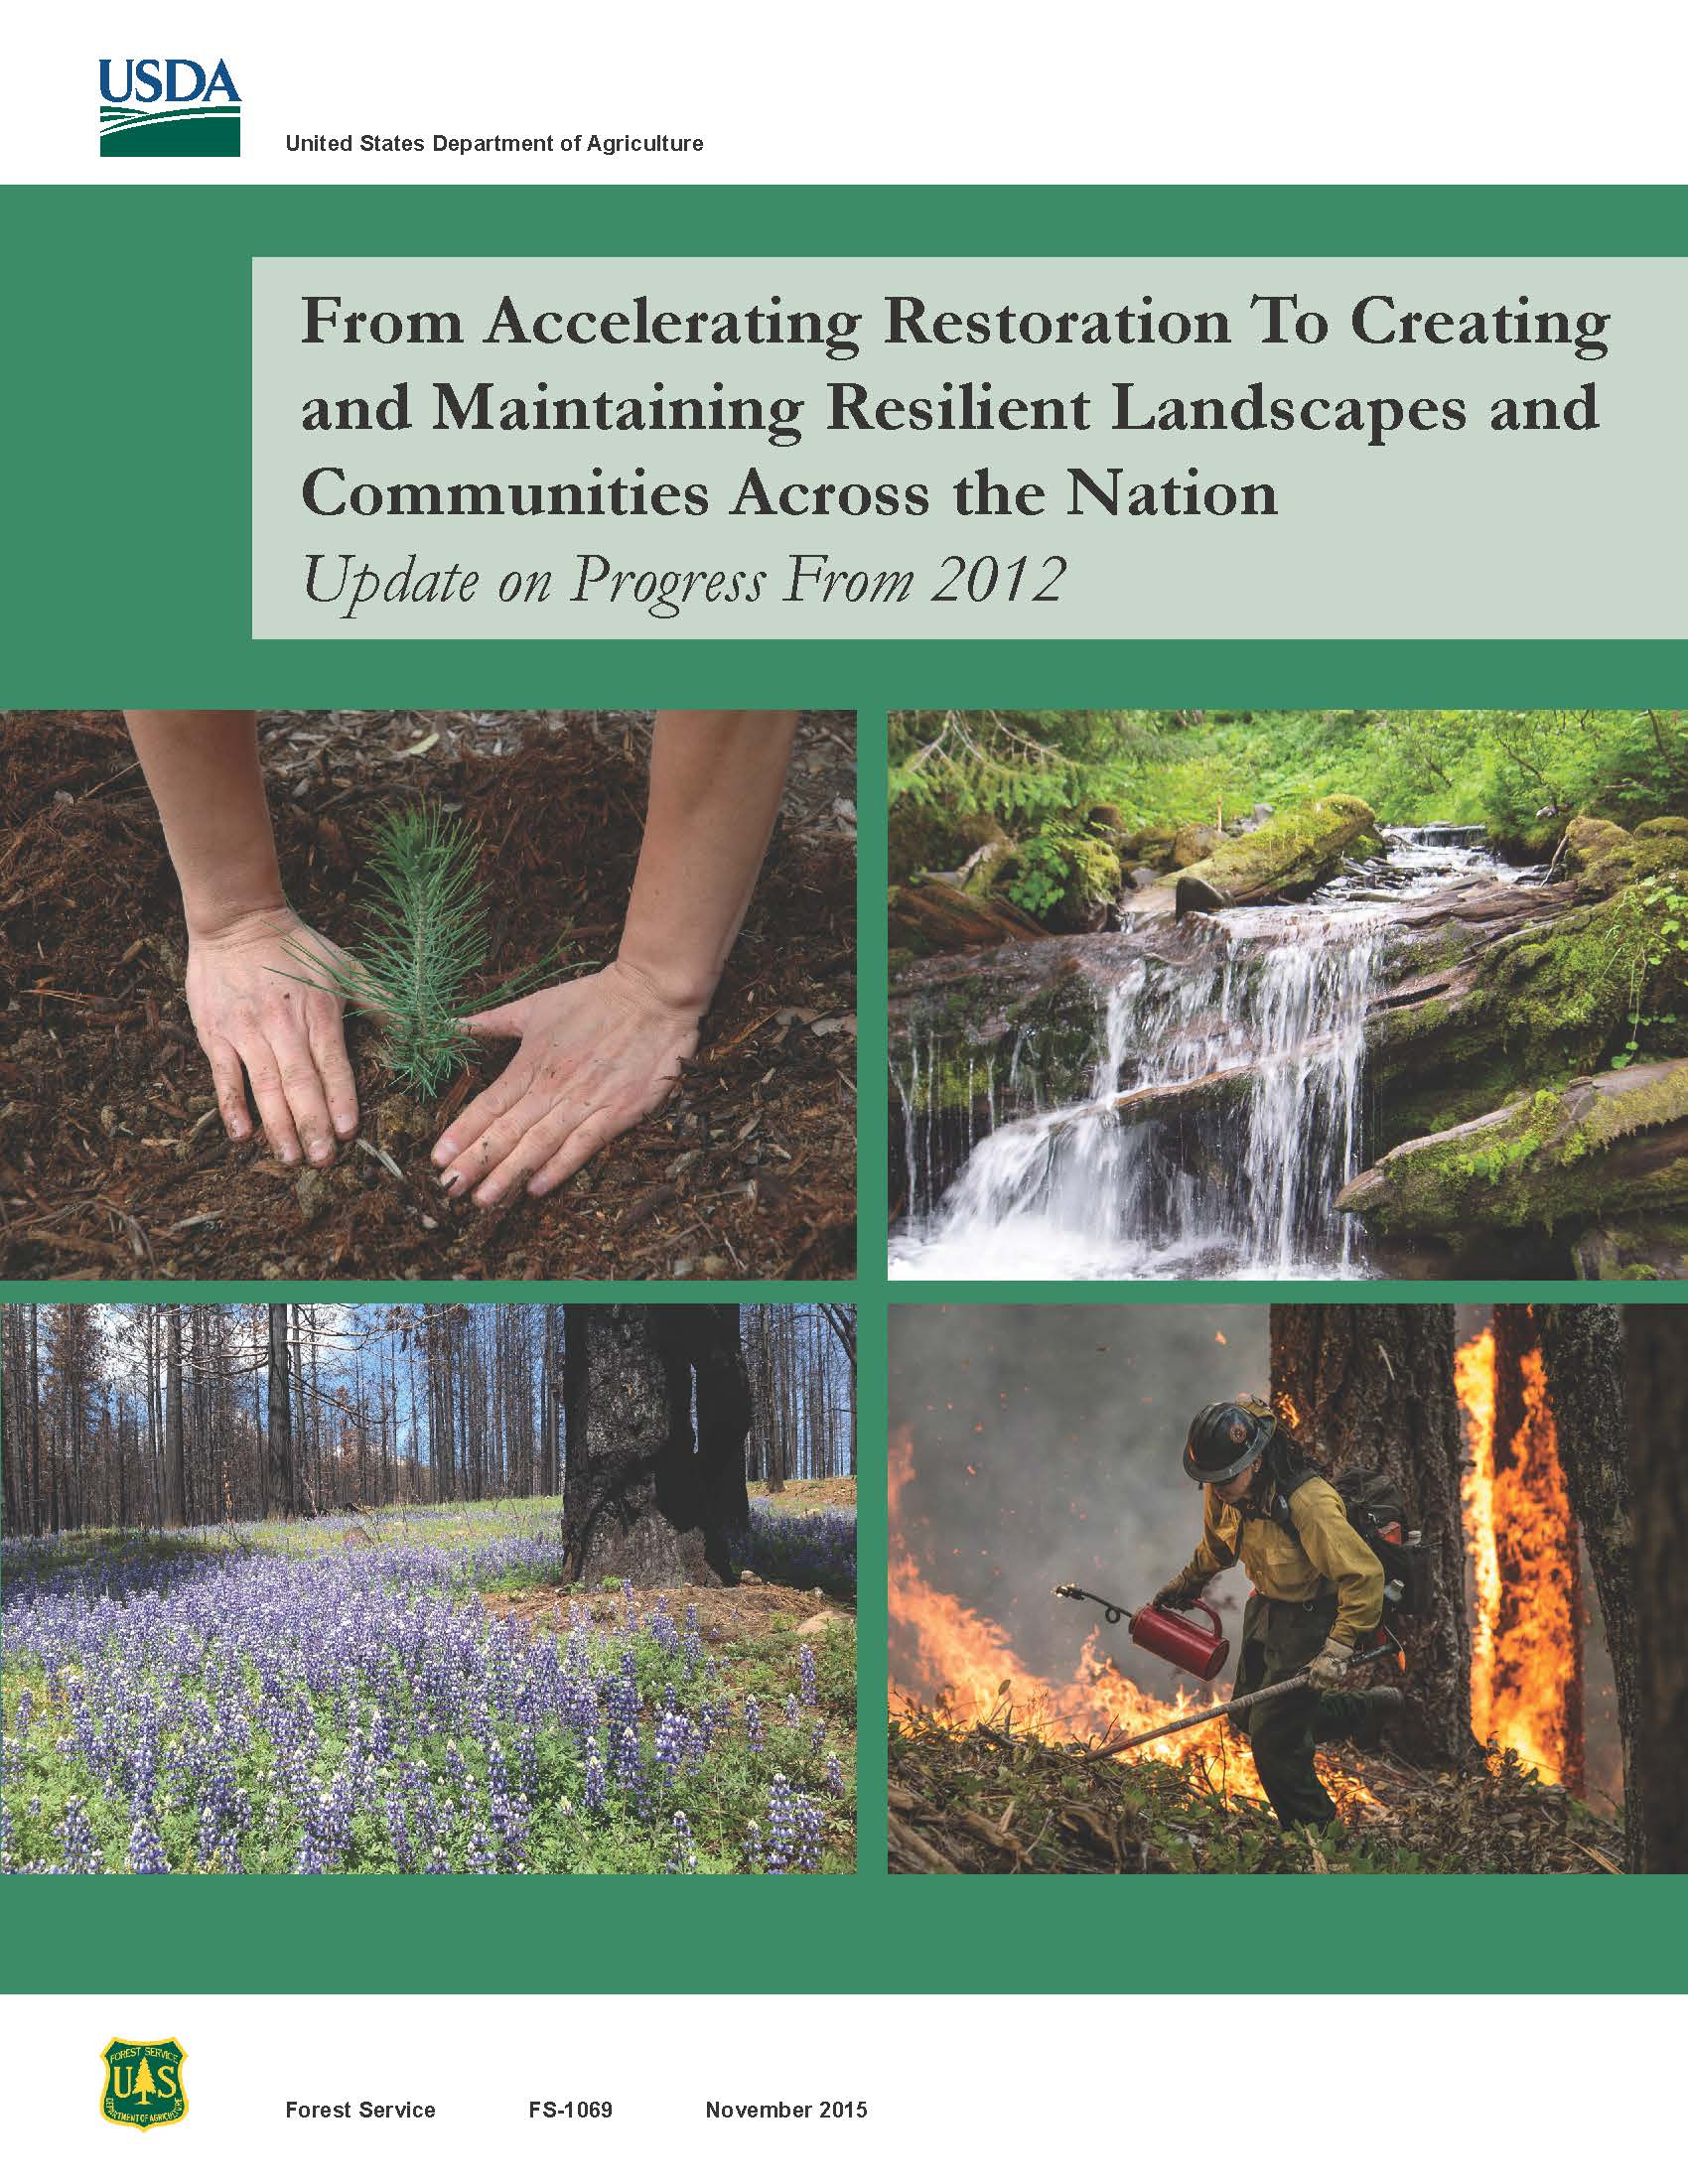 Pictures of tree planting and landscapes. Cover to plan for Accelerated Restoration